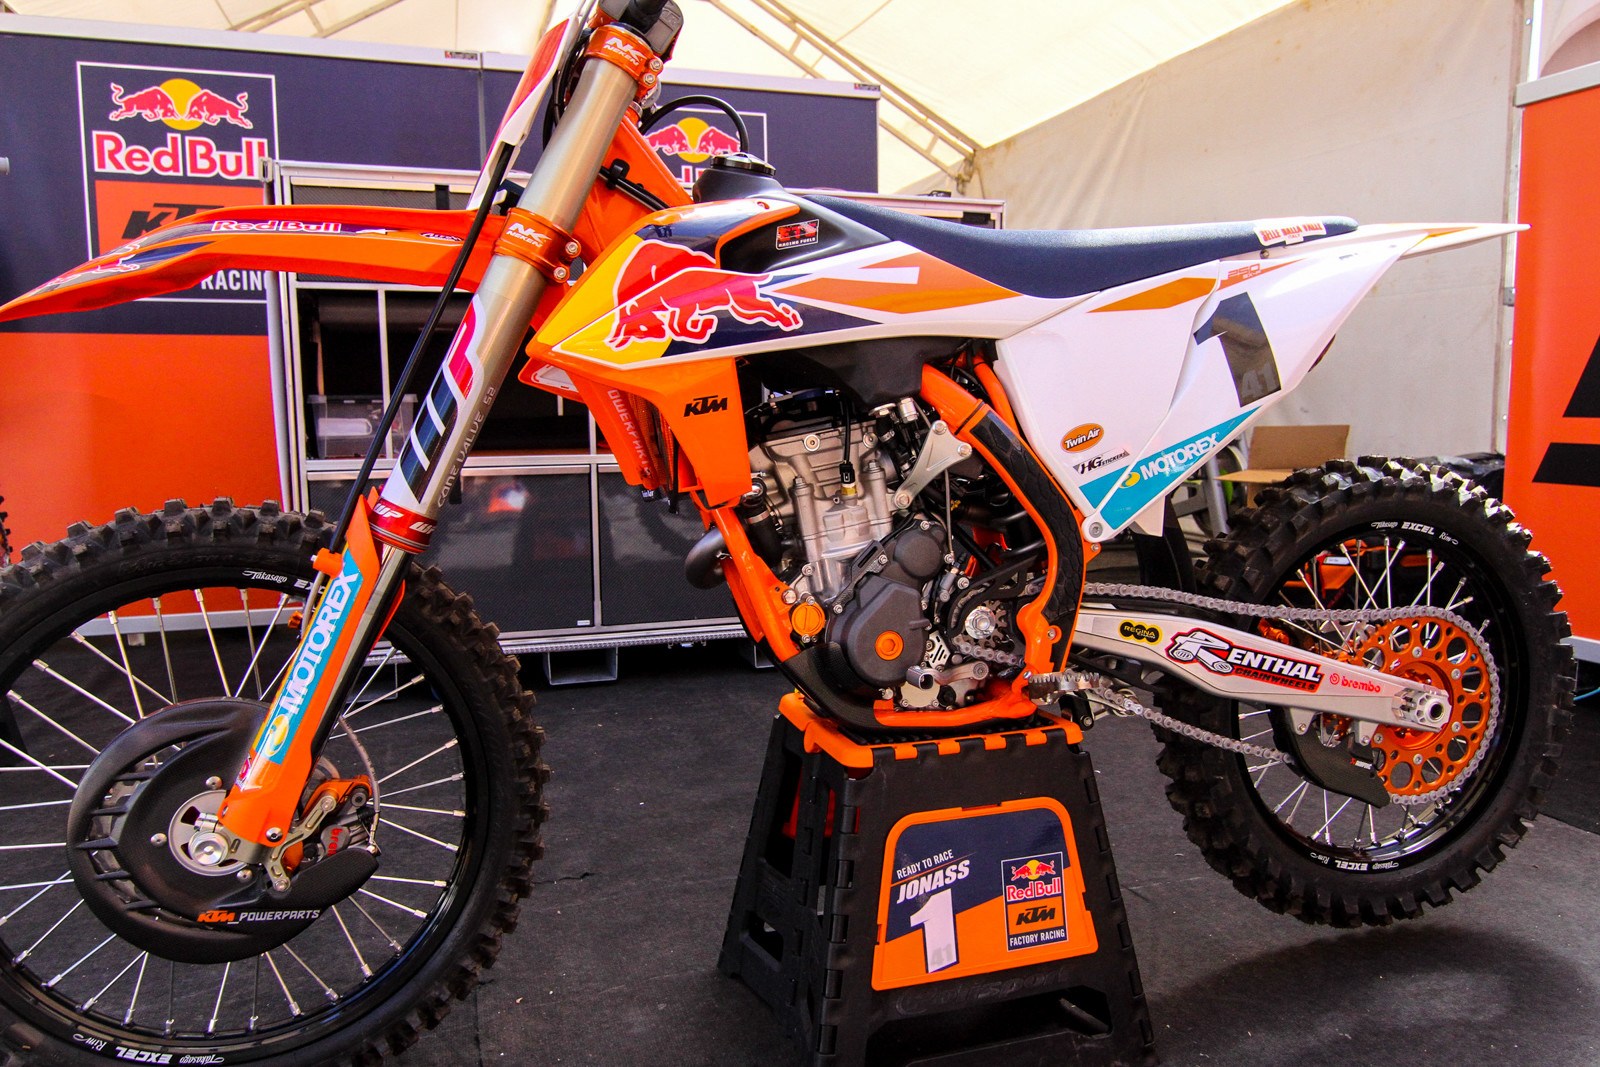 The 2019 KTM 250 SX-F of Pauls Jonass. Much like the Husky team, the Red Bull KTM MX2 riders already have 2019 race bikes, with new chassis and bodywork. The engine? We expect the production bike to have some small changes but for the most part it'll be the same technical architecture as the prior year.